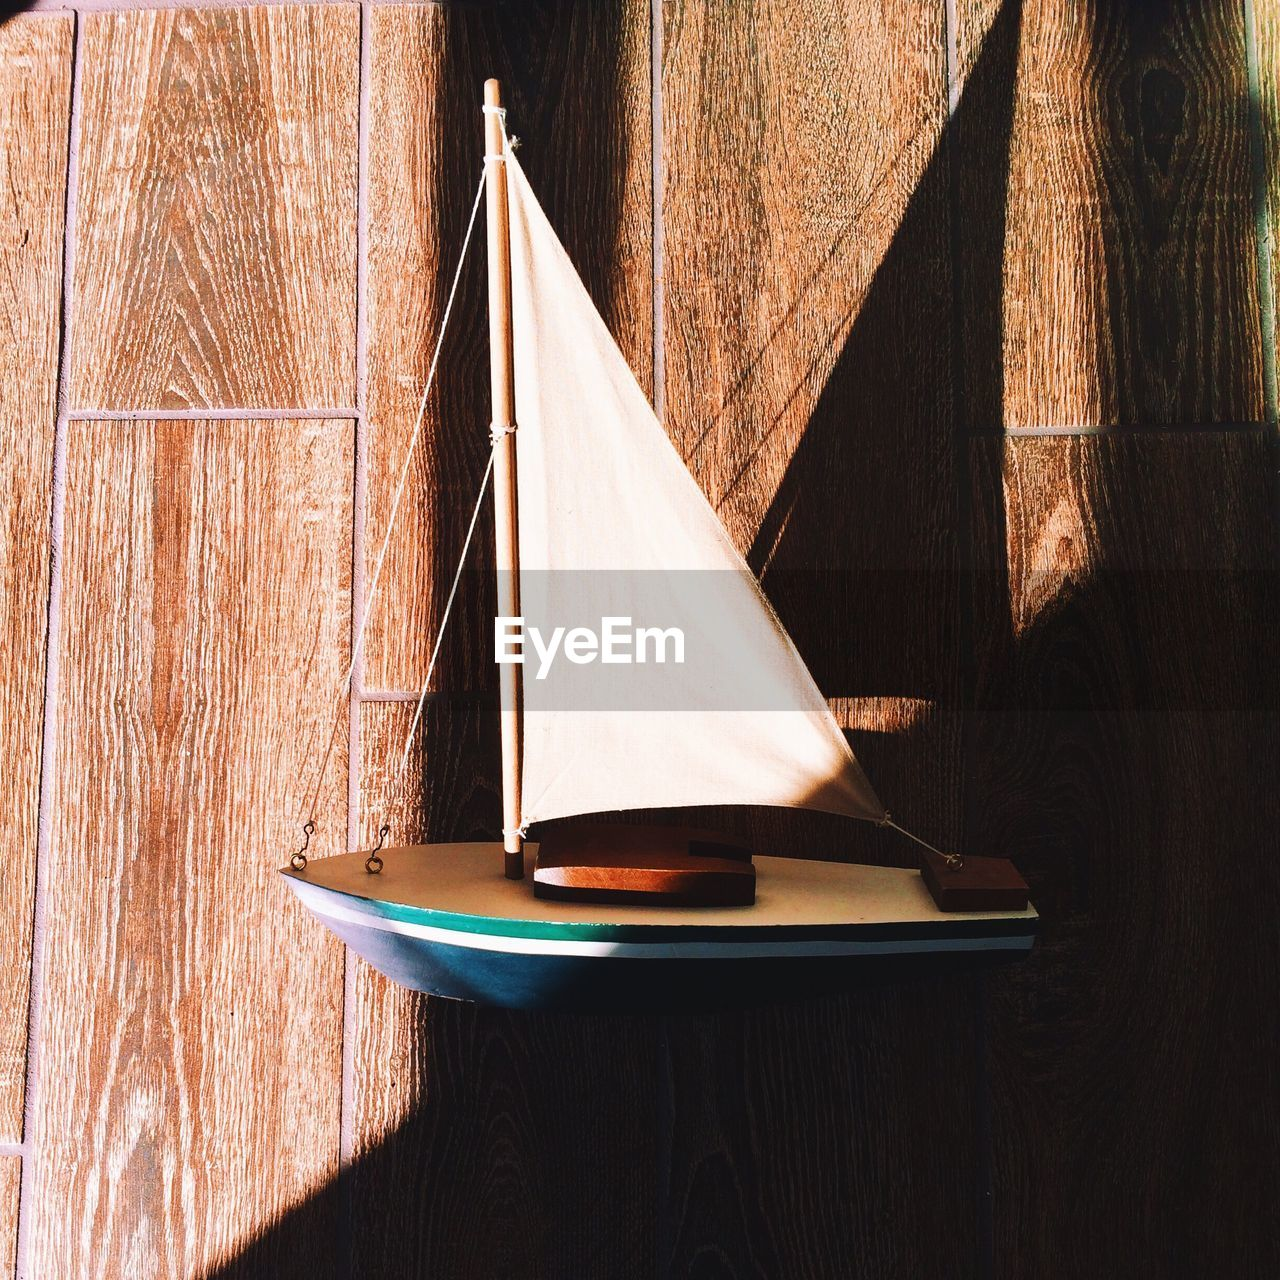 Sunlight Falling On Boat Figurine On Table